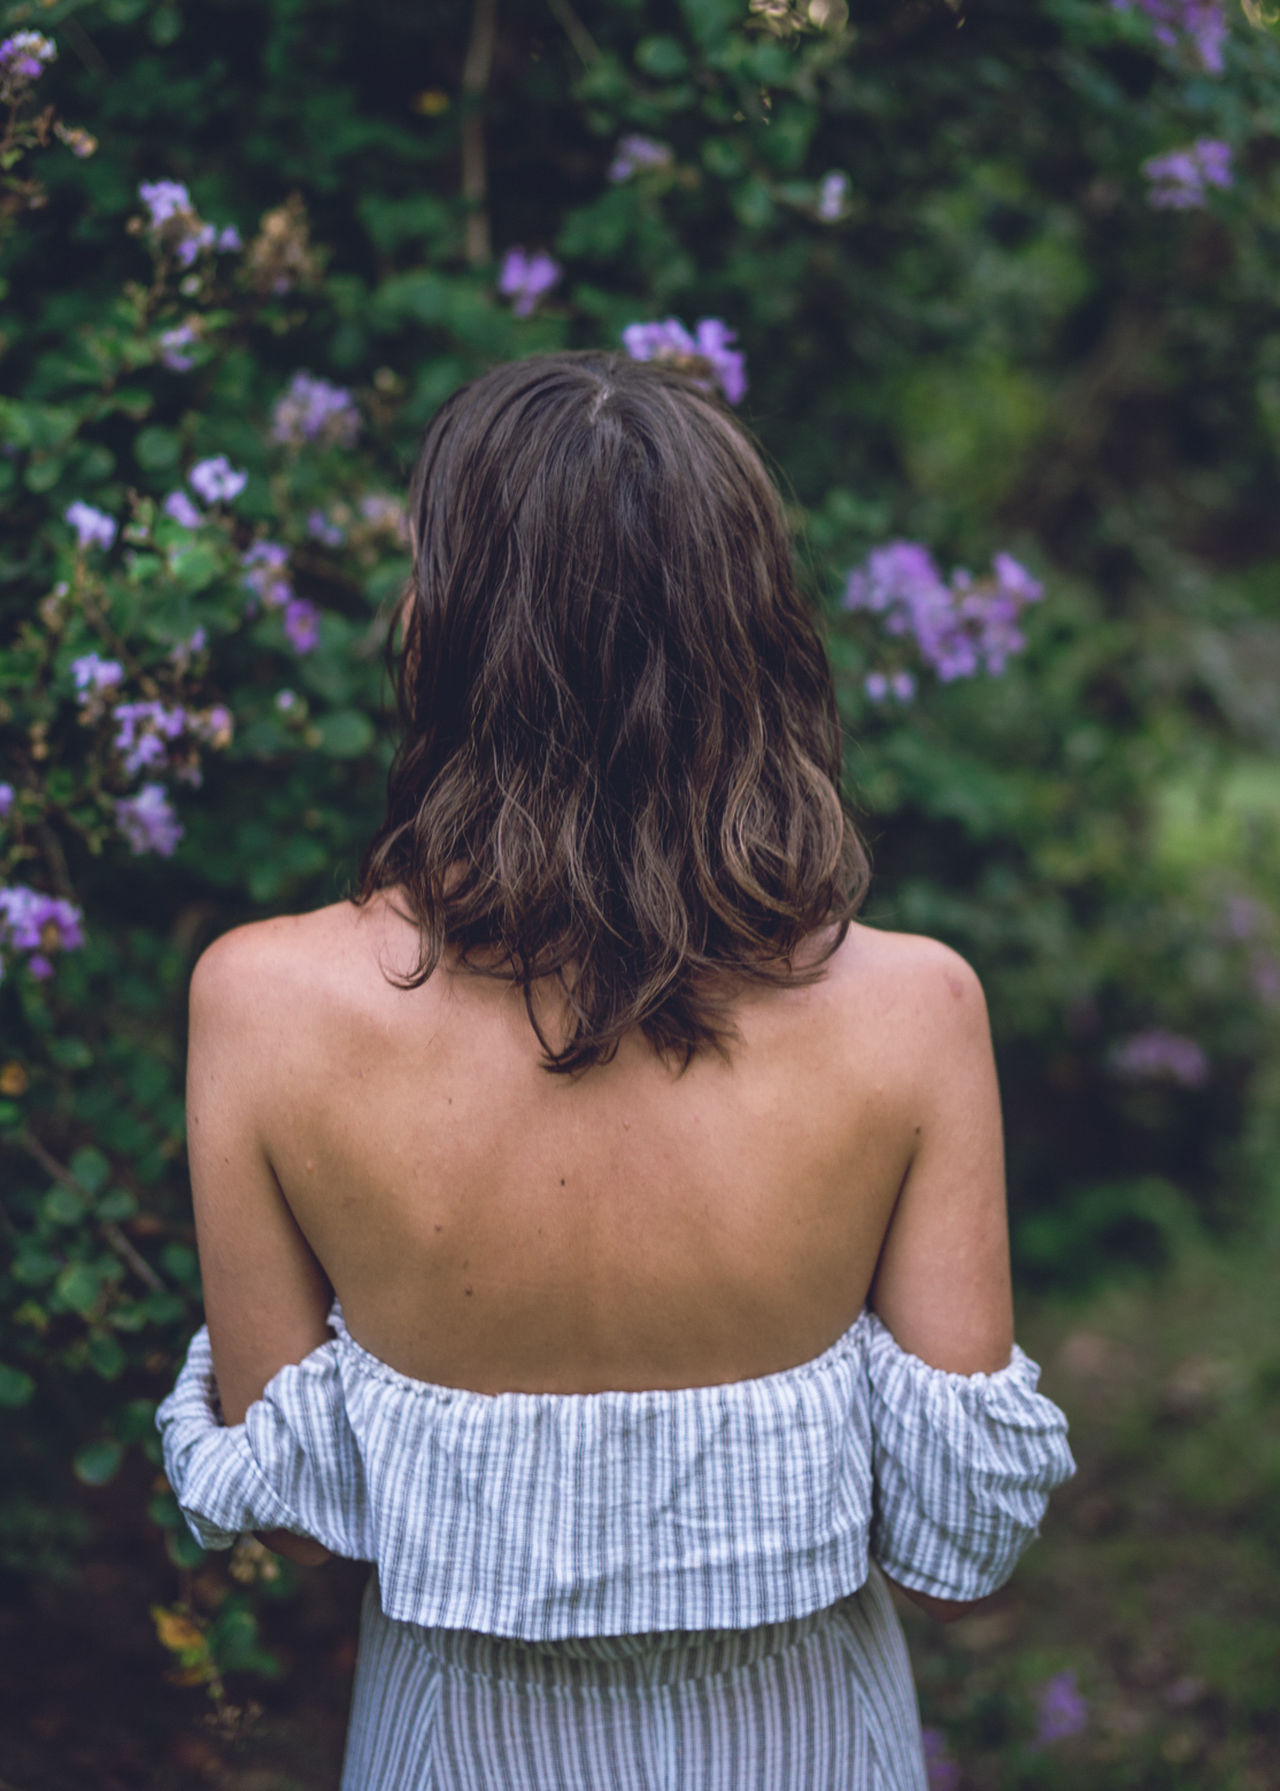 Back Beautiful Nature Beautiful Woman Beauty In Nature Daydreaming Flowers Flowers_collection Gardens Girl Holiday Human Back Love Lovely Girl Purple Travel Travel Photography Young Young Adult Young Women Youth